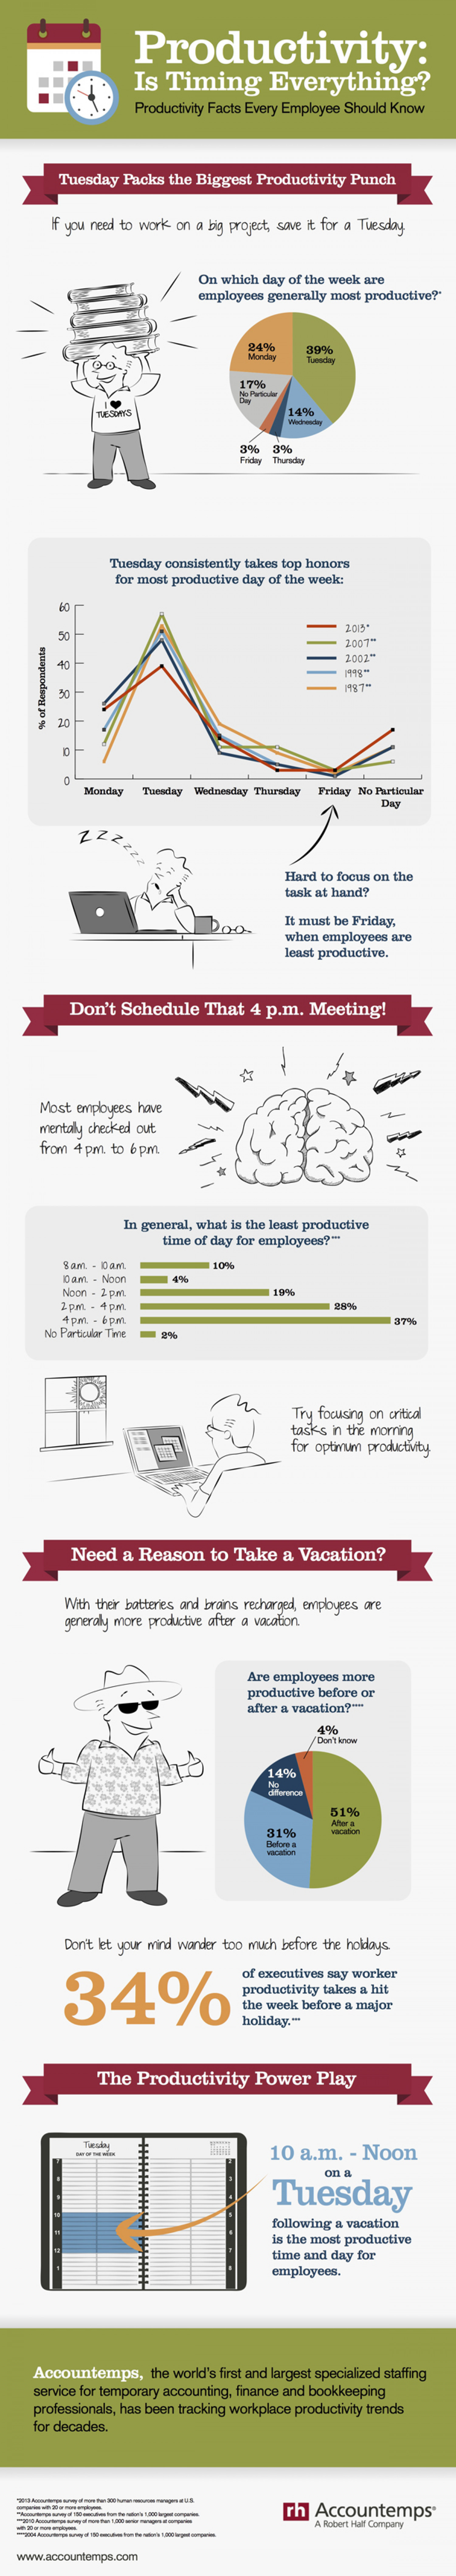 15 Tips for Boosting Your Productivity Infographic